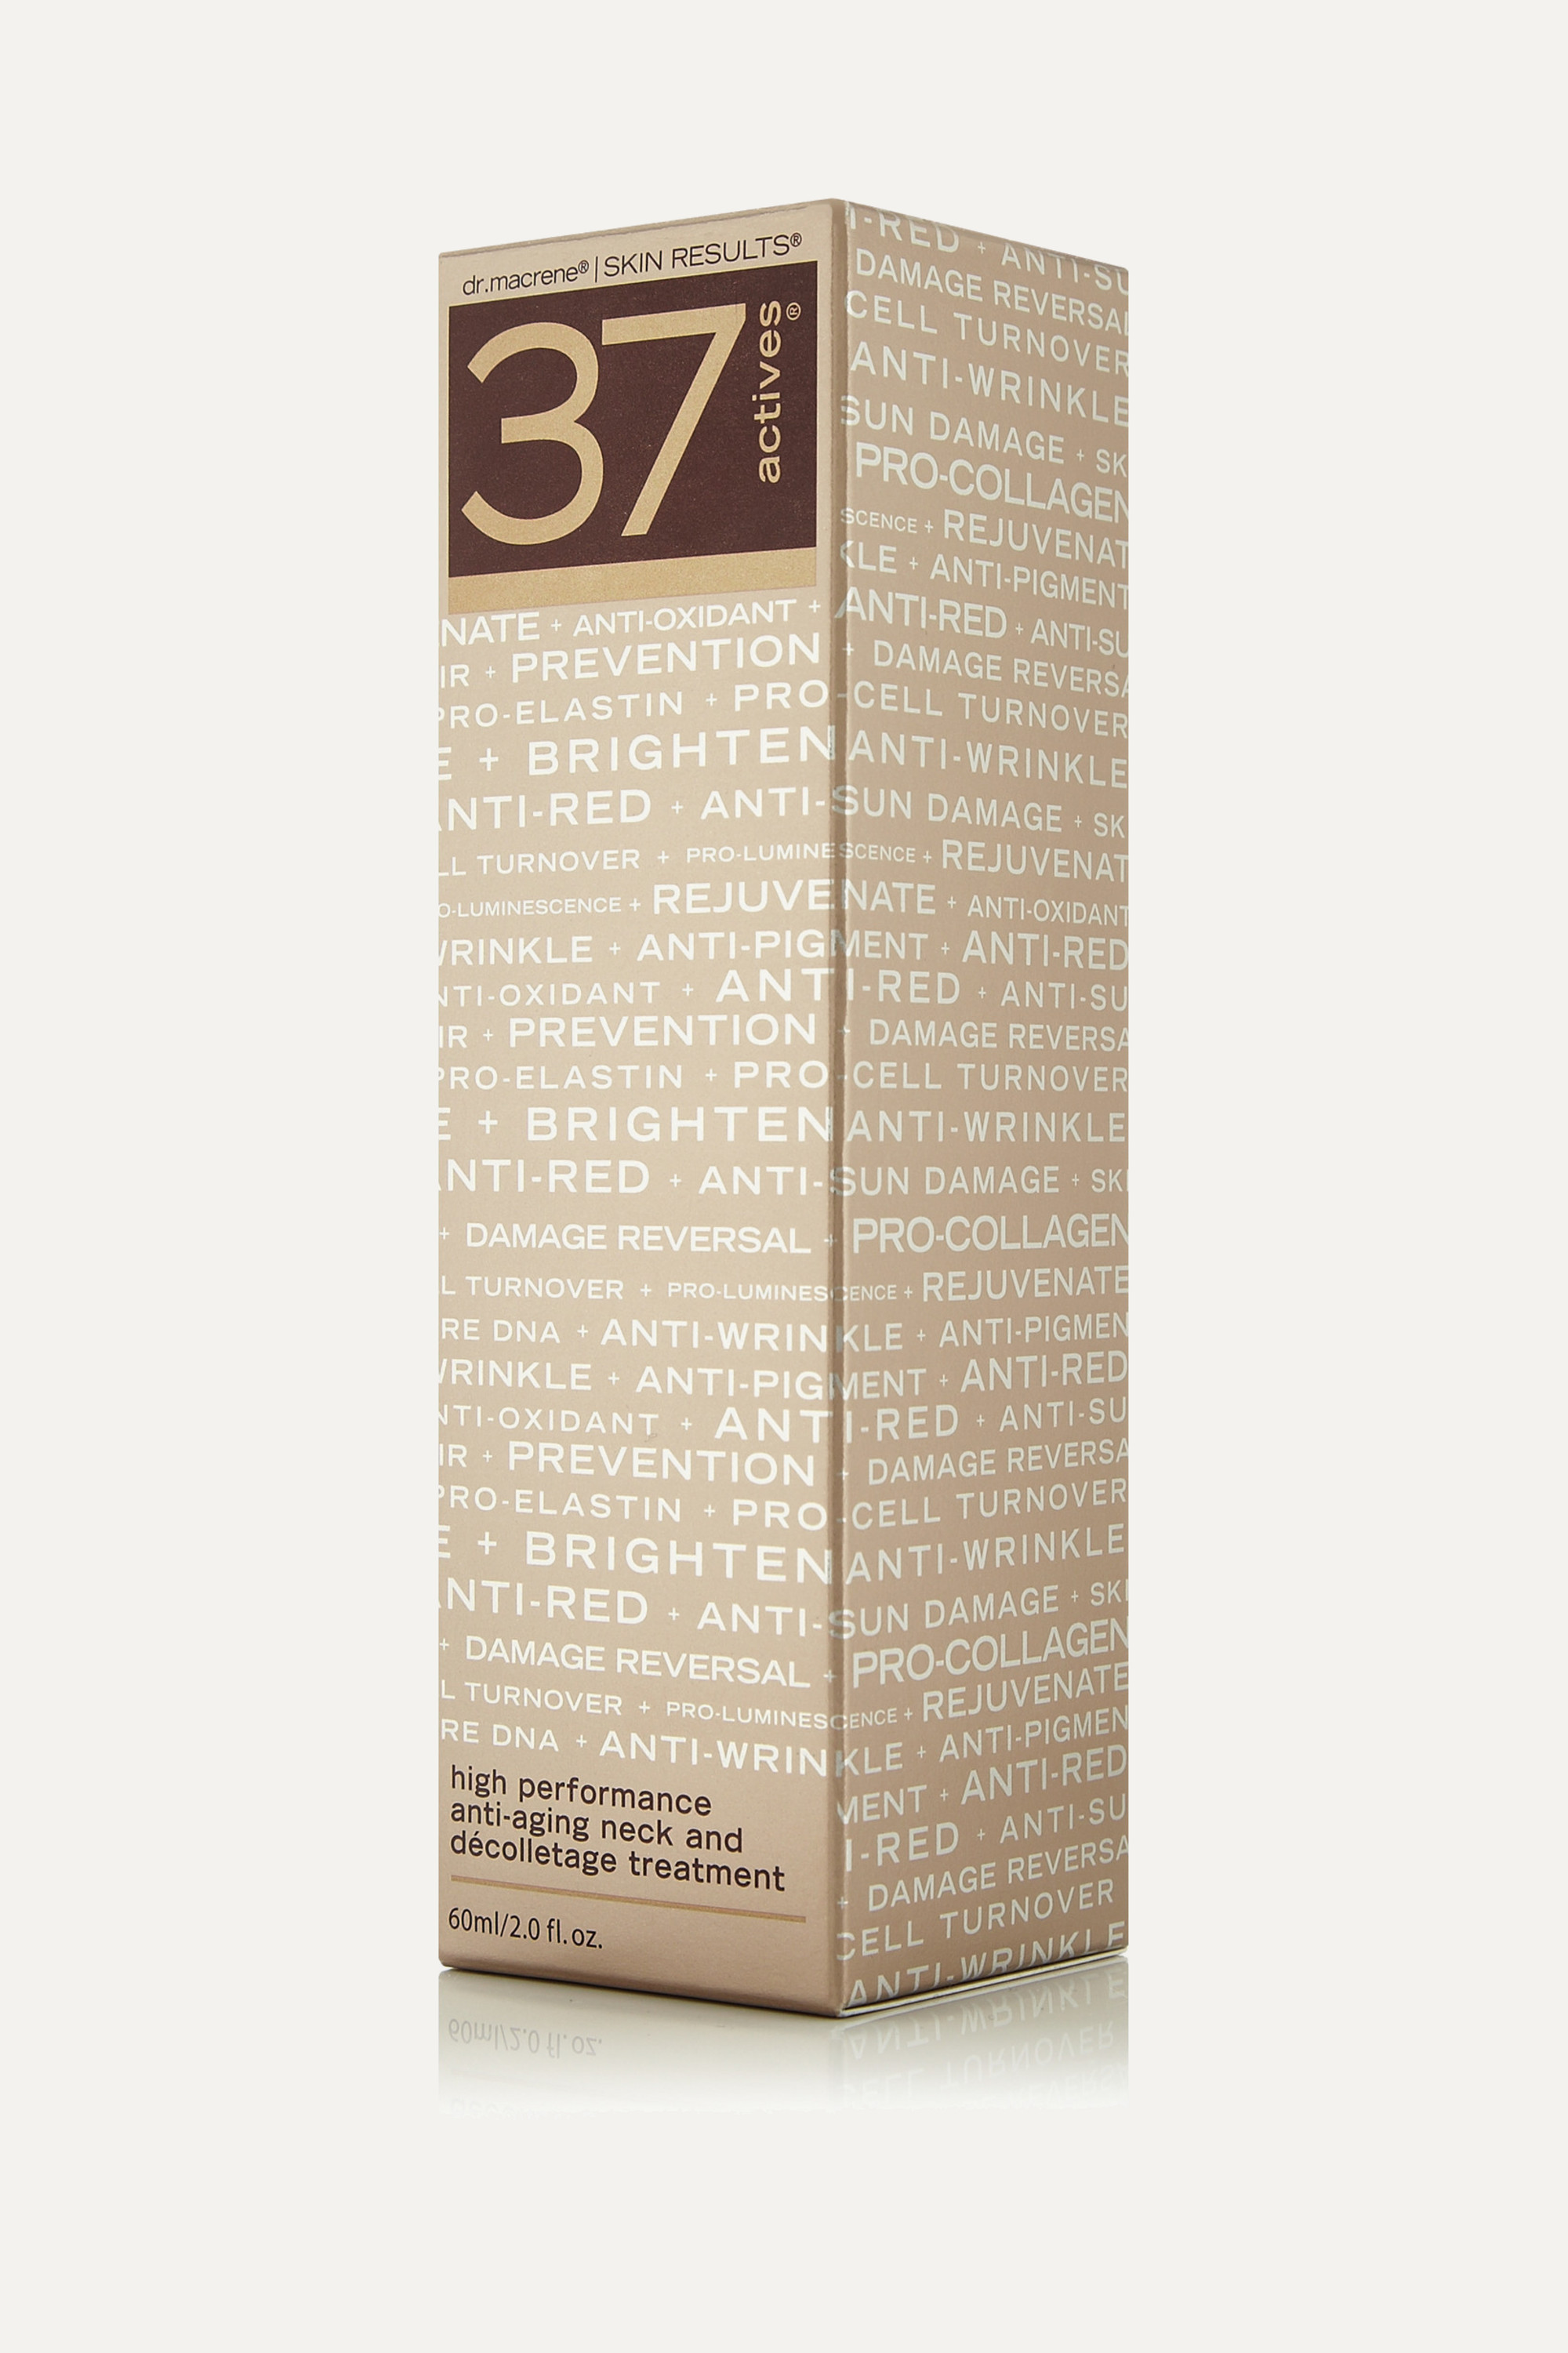 37 Actives Neck And Décolletage High Performance Anti-Aging Treatment, 60ml